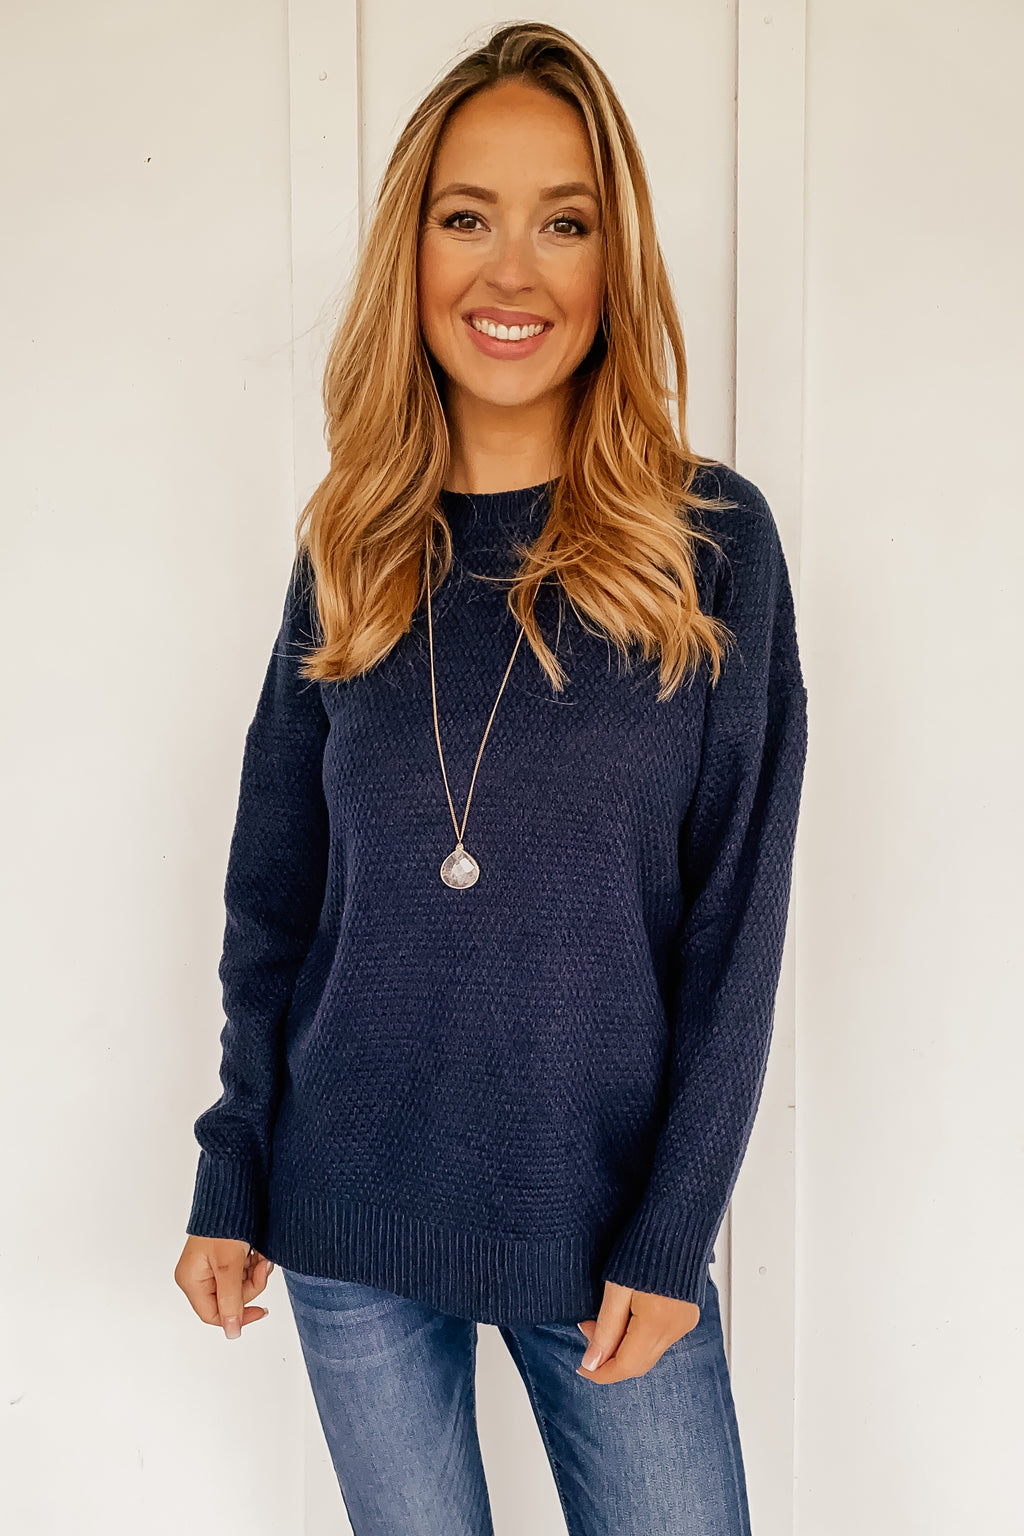 The Simple Shelby Sweater in Navy